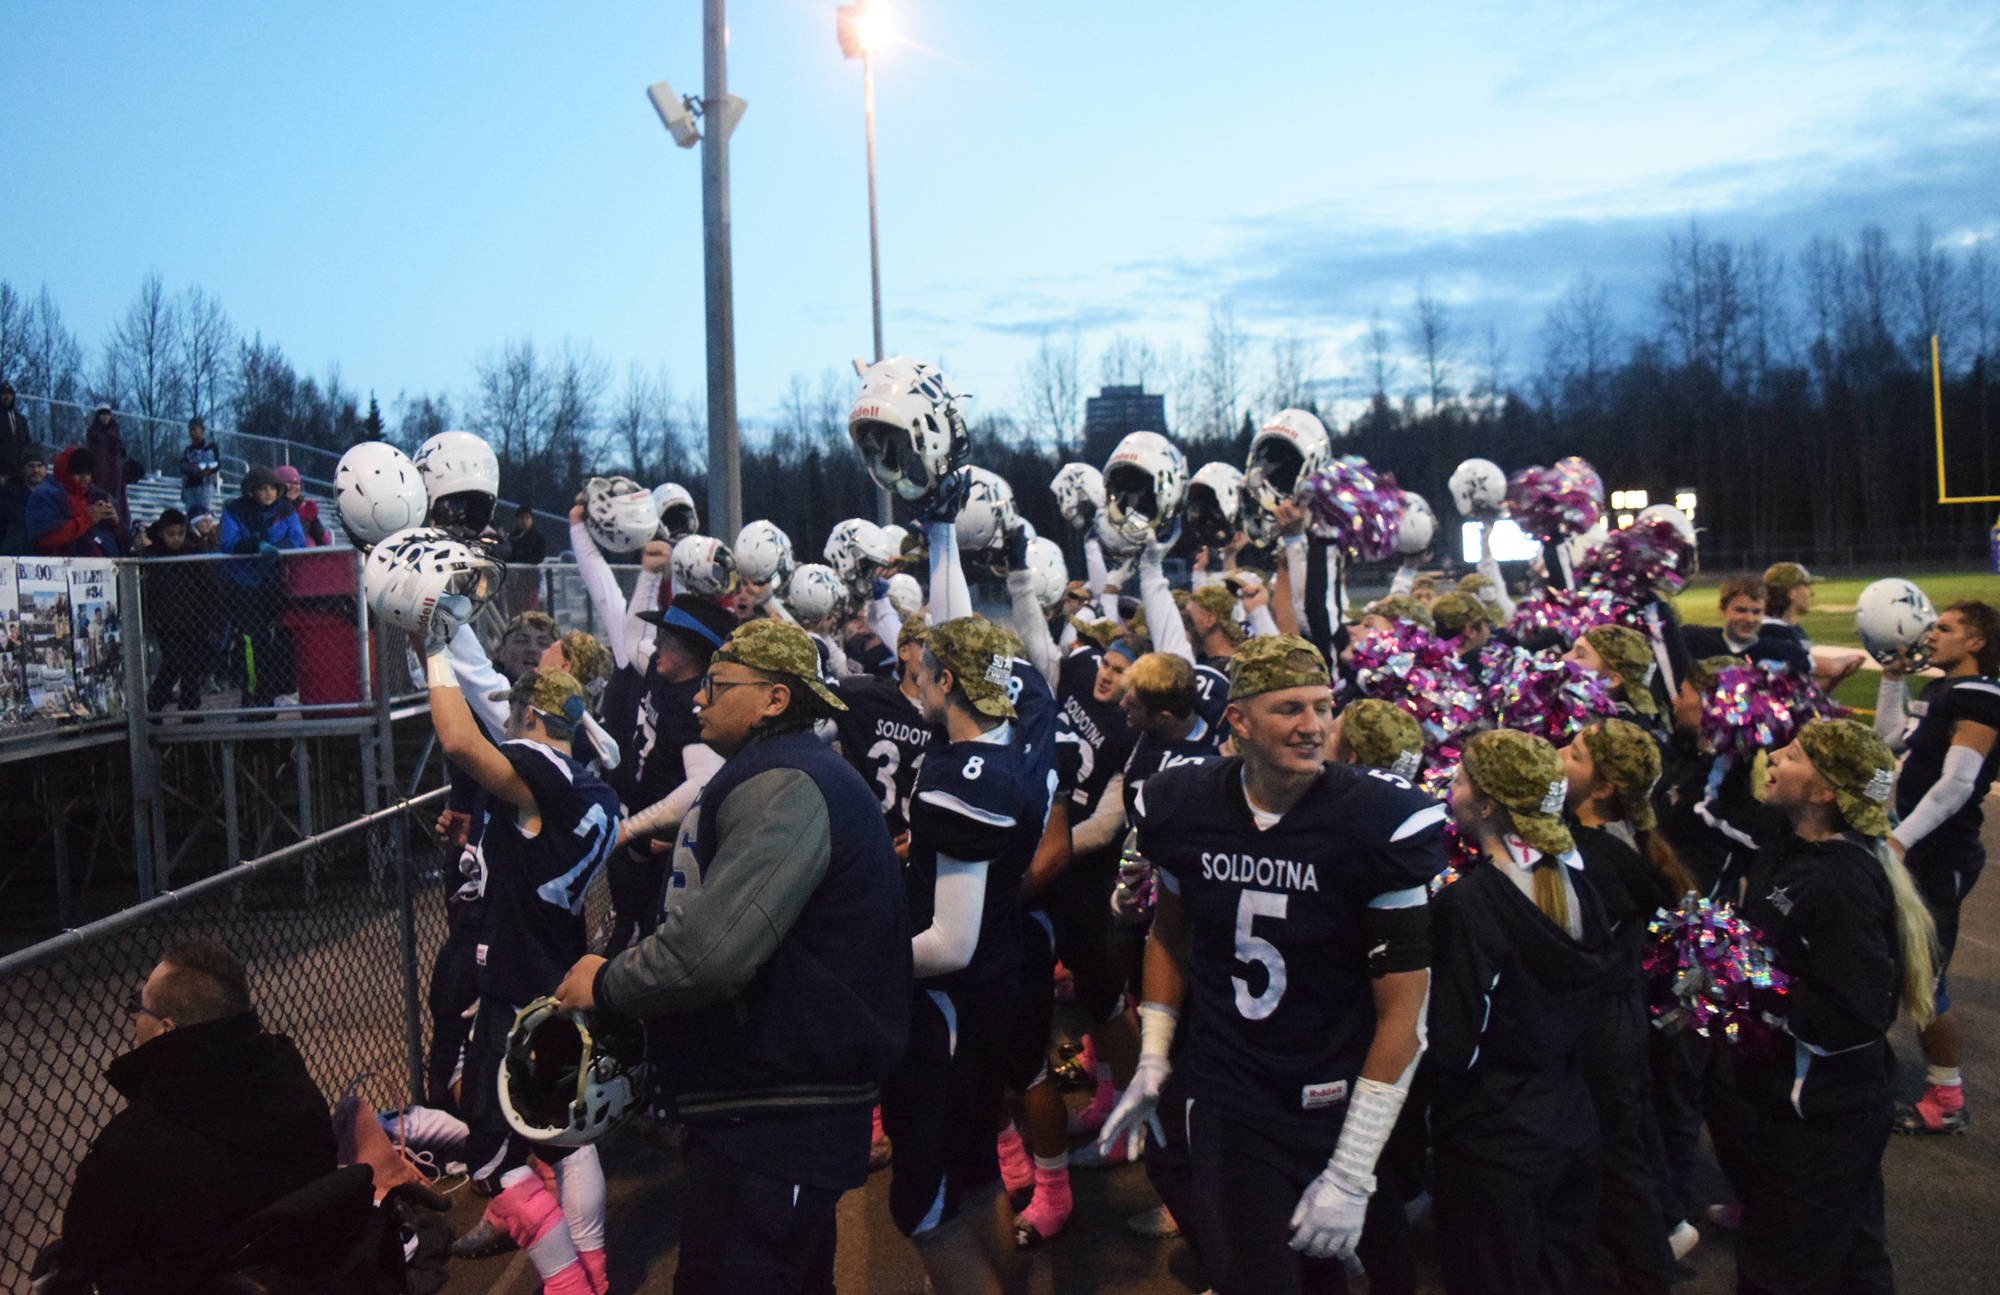 The Soldotna football team celebrates the victory over Lathrop, Saturday, Oct. 19, 2019, at the Div. II state football championship at Anchorage Football Stadium in Anchorage, Alaska. (Photo by Joey Klecka/Peninsula Clarion)